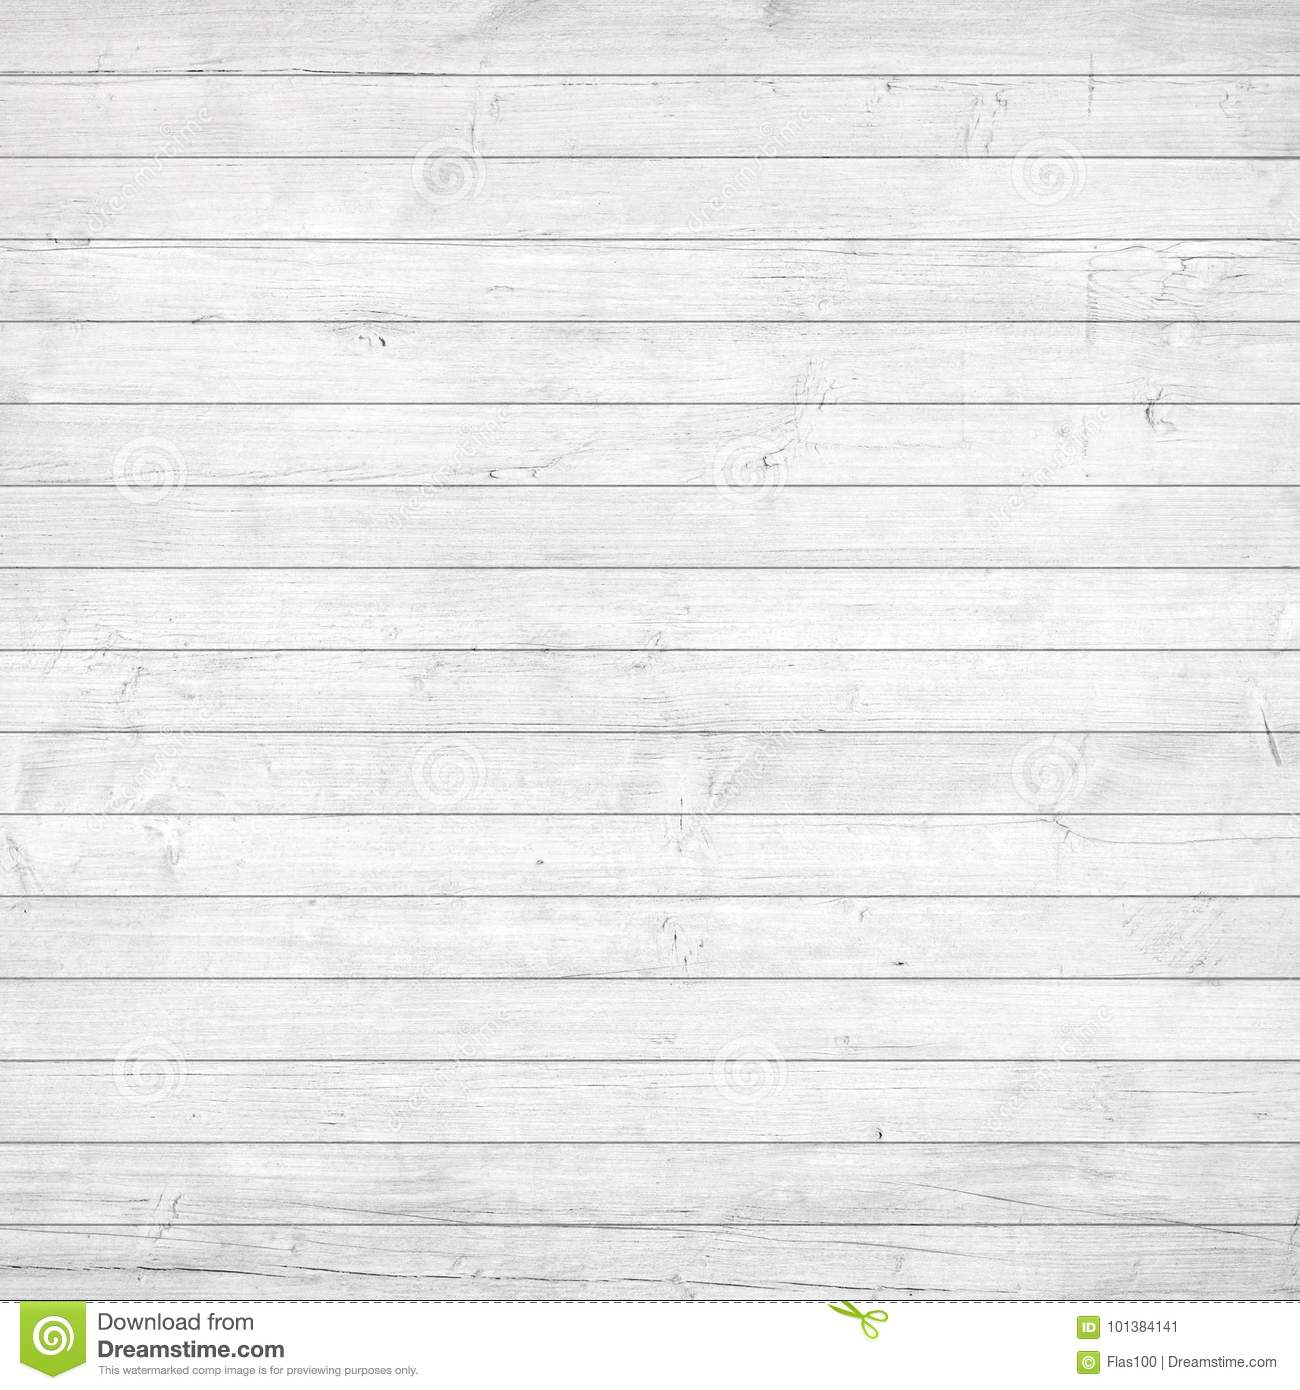 White wooden parquet, table, floor or wall surface. Light wood texture.